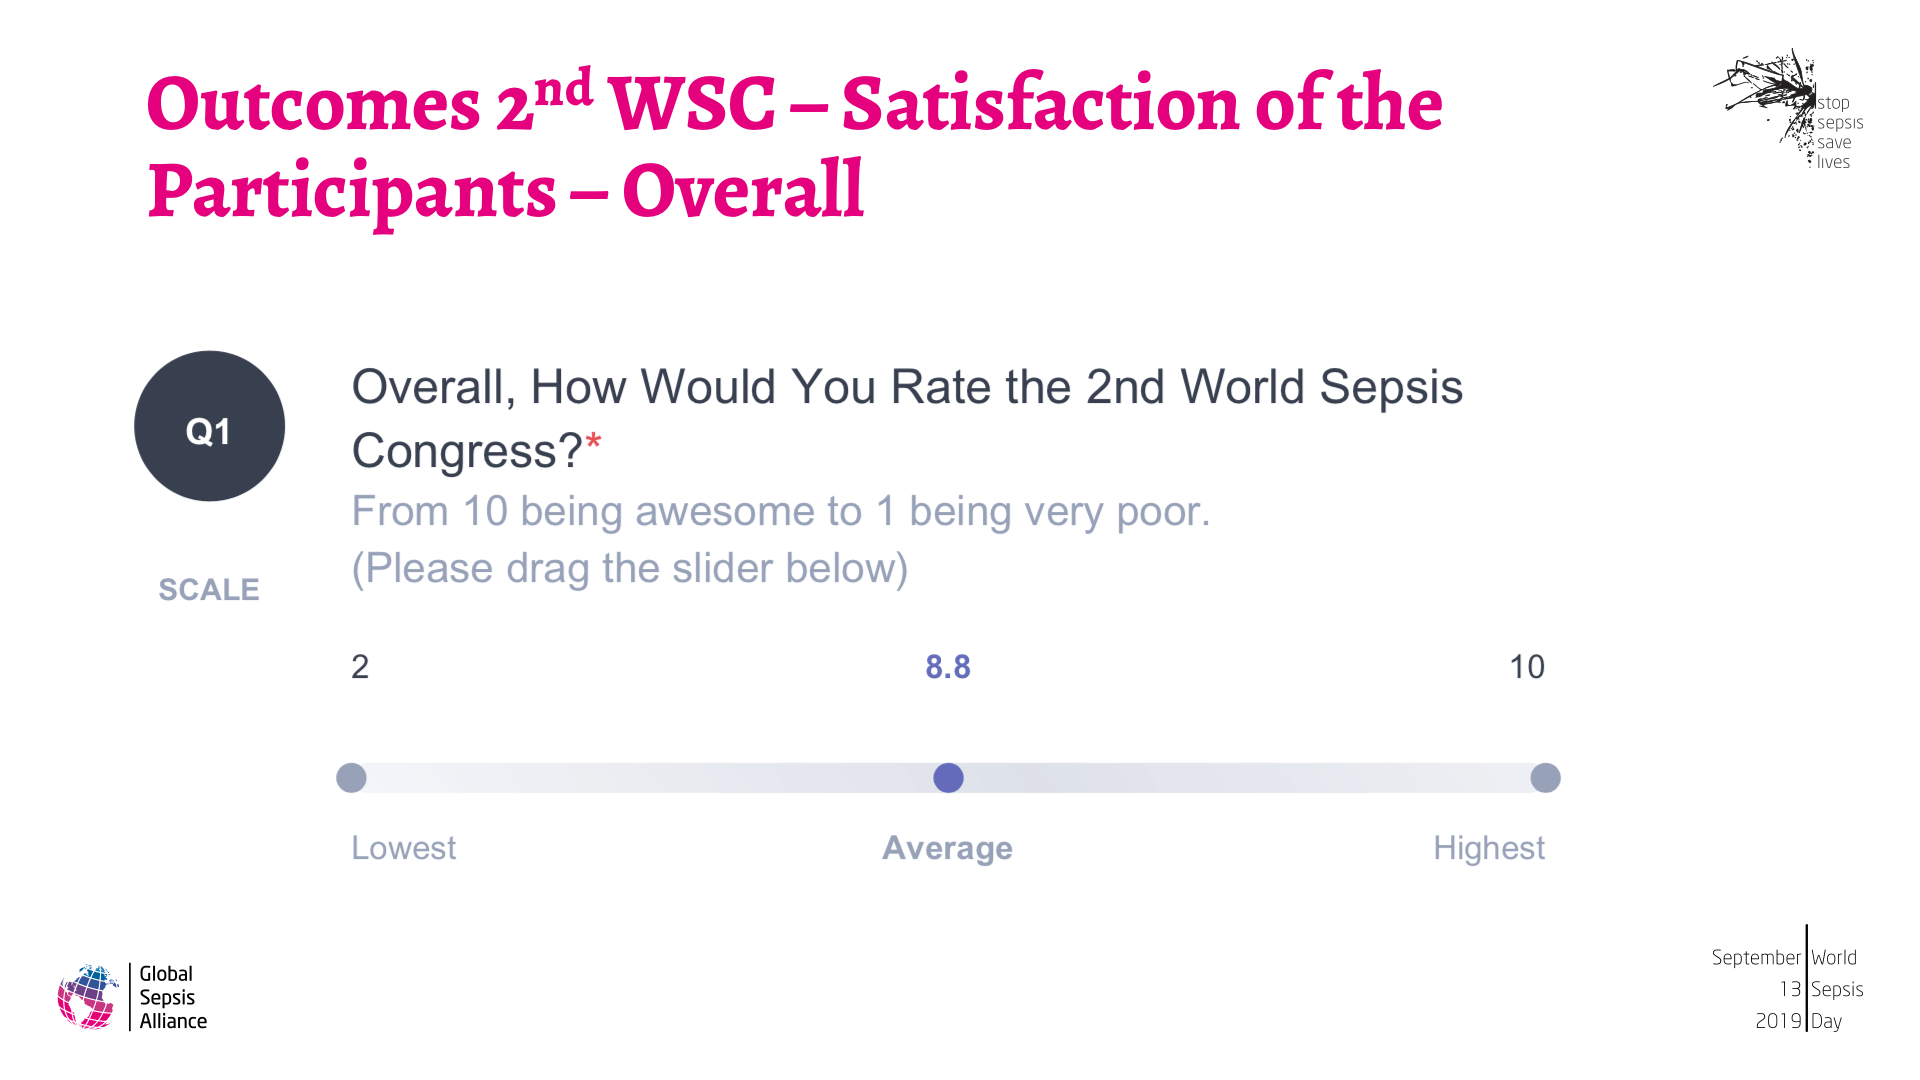 Outcomes 2nd WSC and WSD 2018 5.png